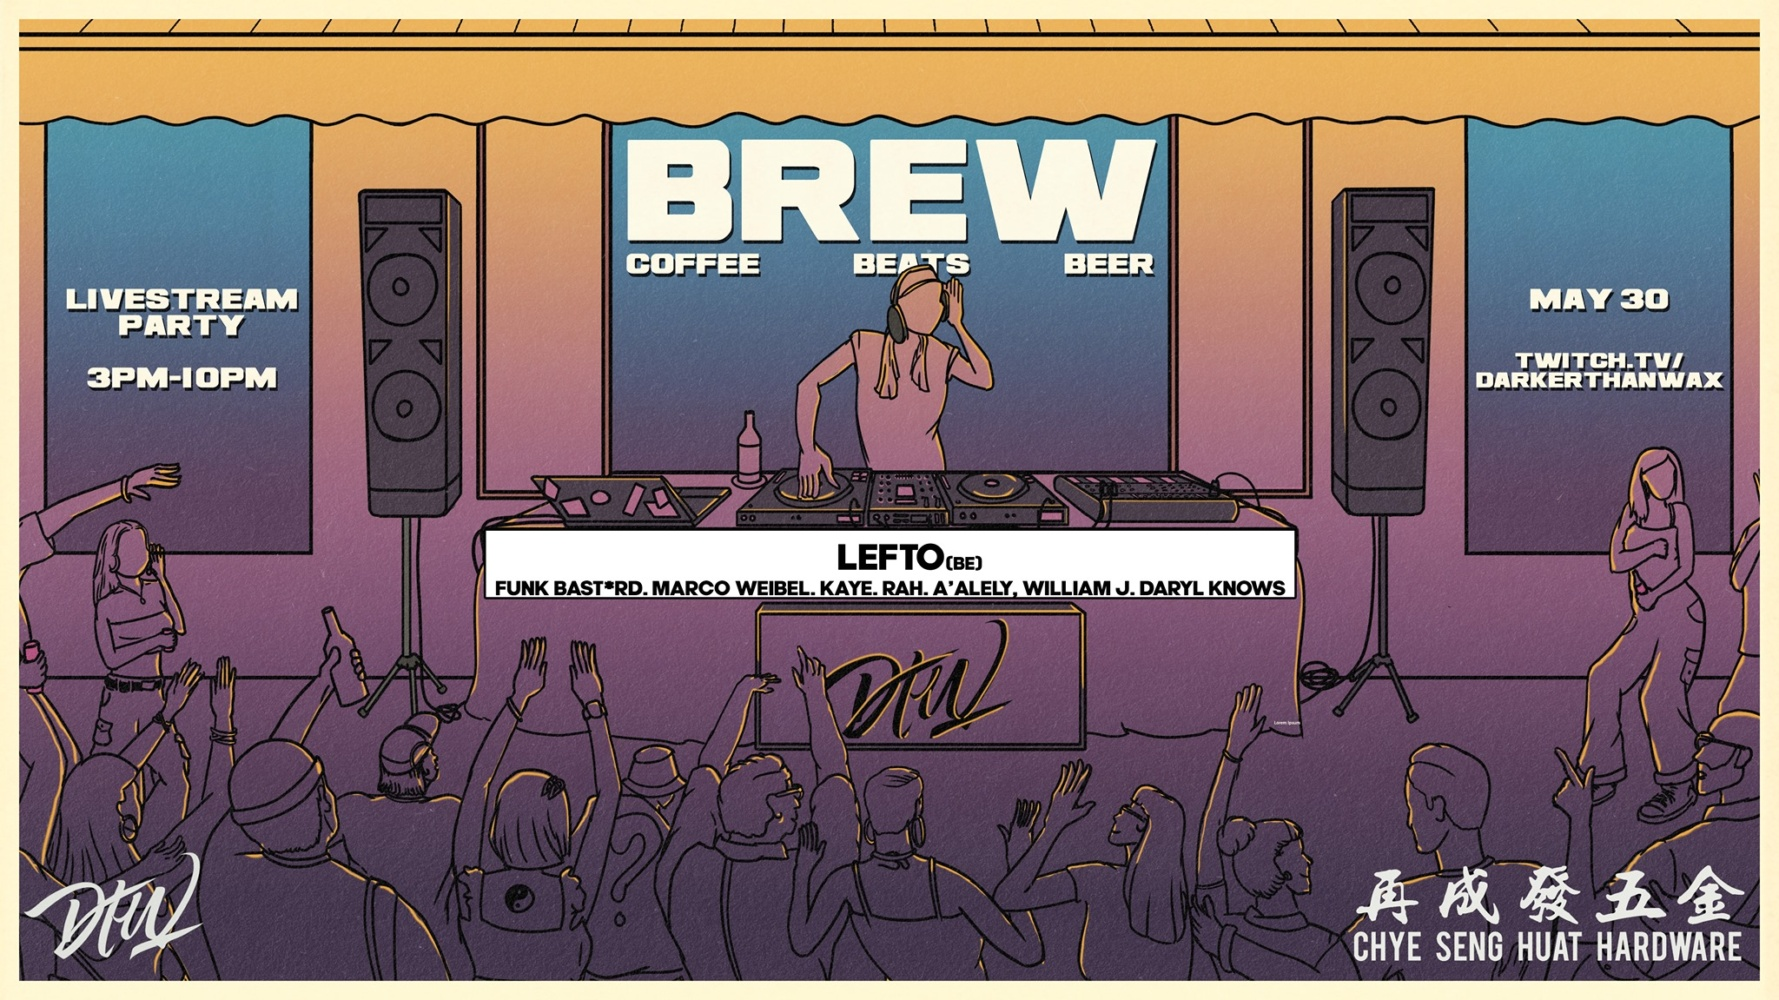 Darker Than Wax + Chye Seng Huat Hardware PRESENT: BREW Livestream PARTY